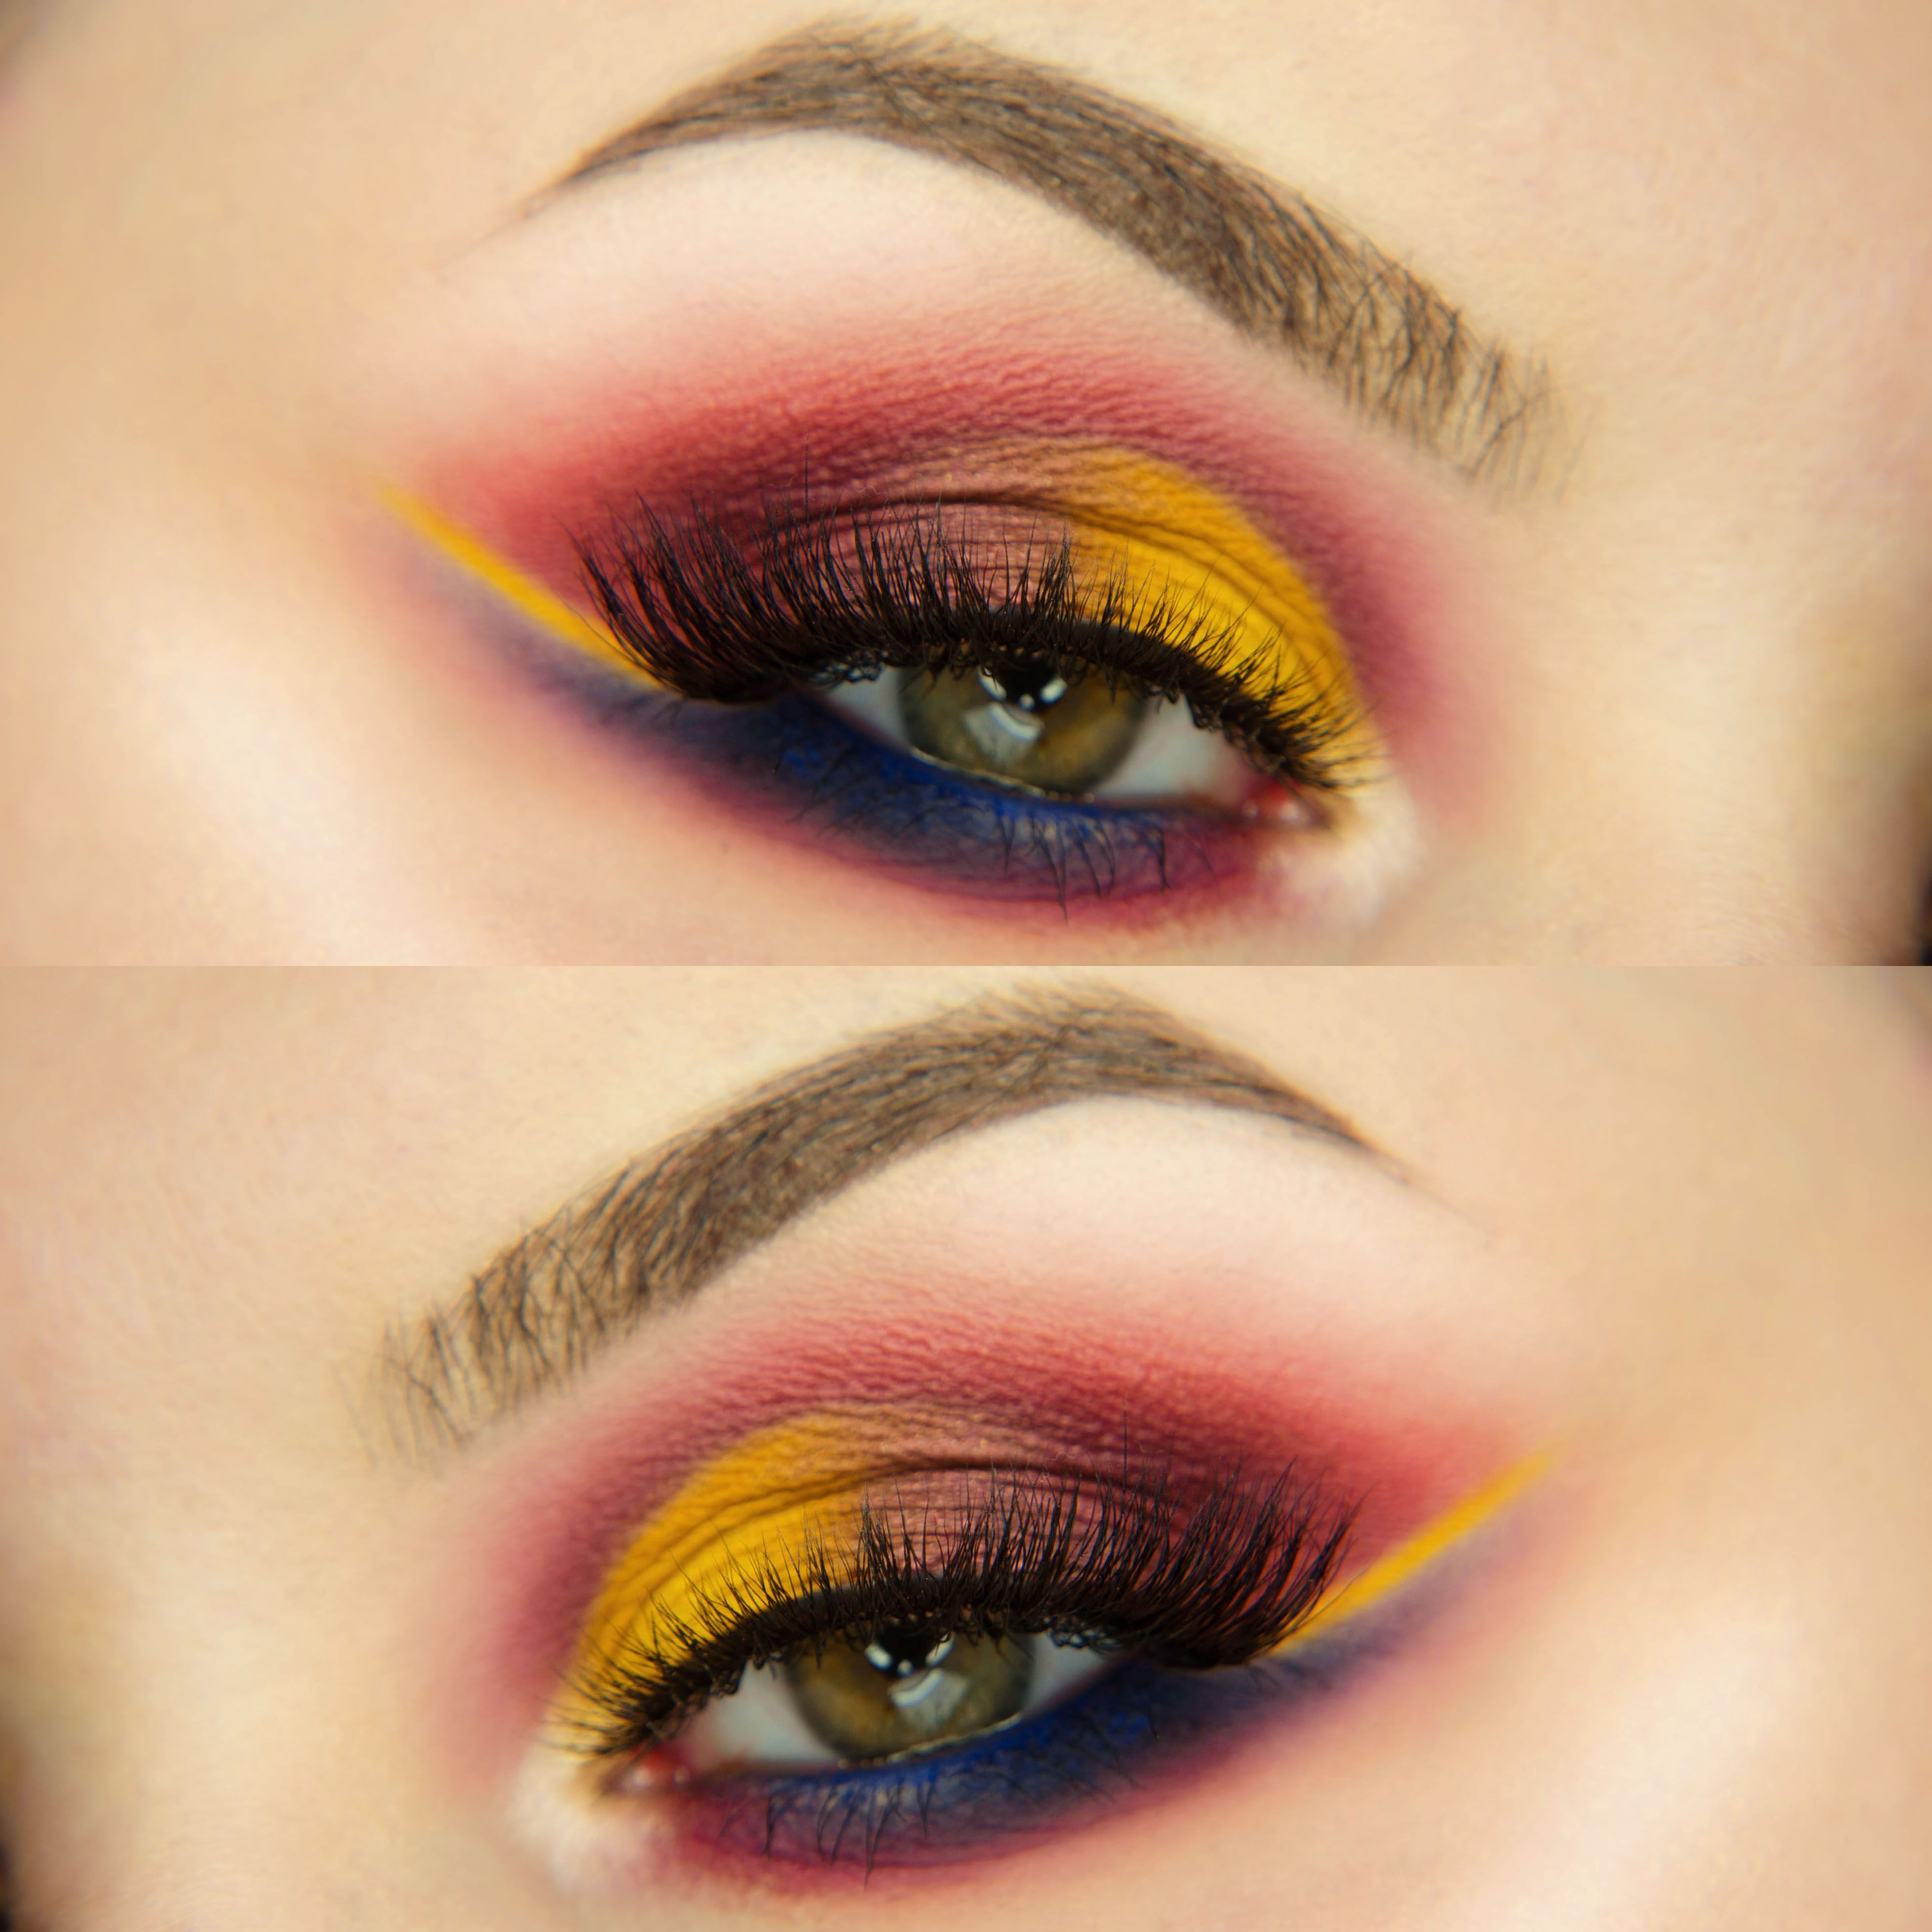 Autumn out makeup tutorial makeup geek makeup inspiration watch makeup video tutorials learn tips from the experts and even buy our makeup online all items ship worldwide and are paraben free baditri Image collections